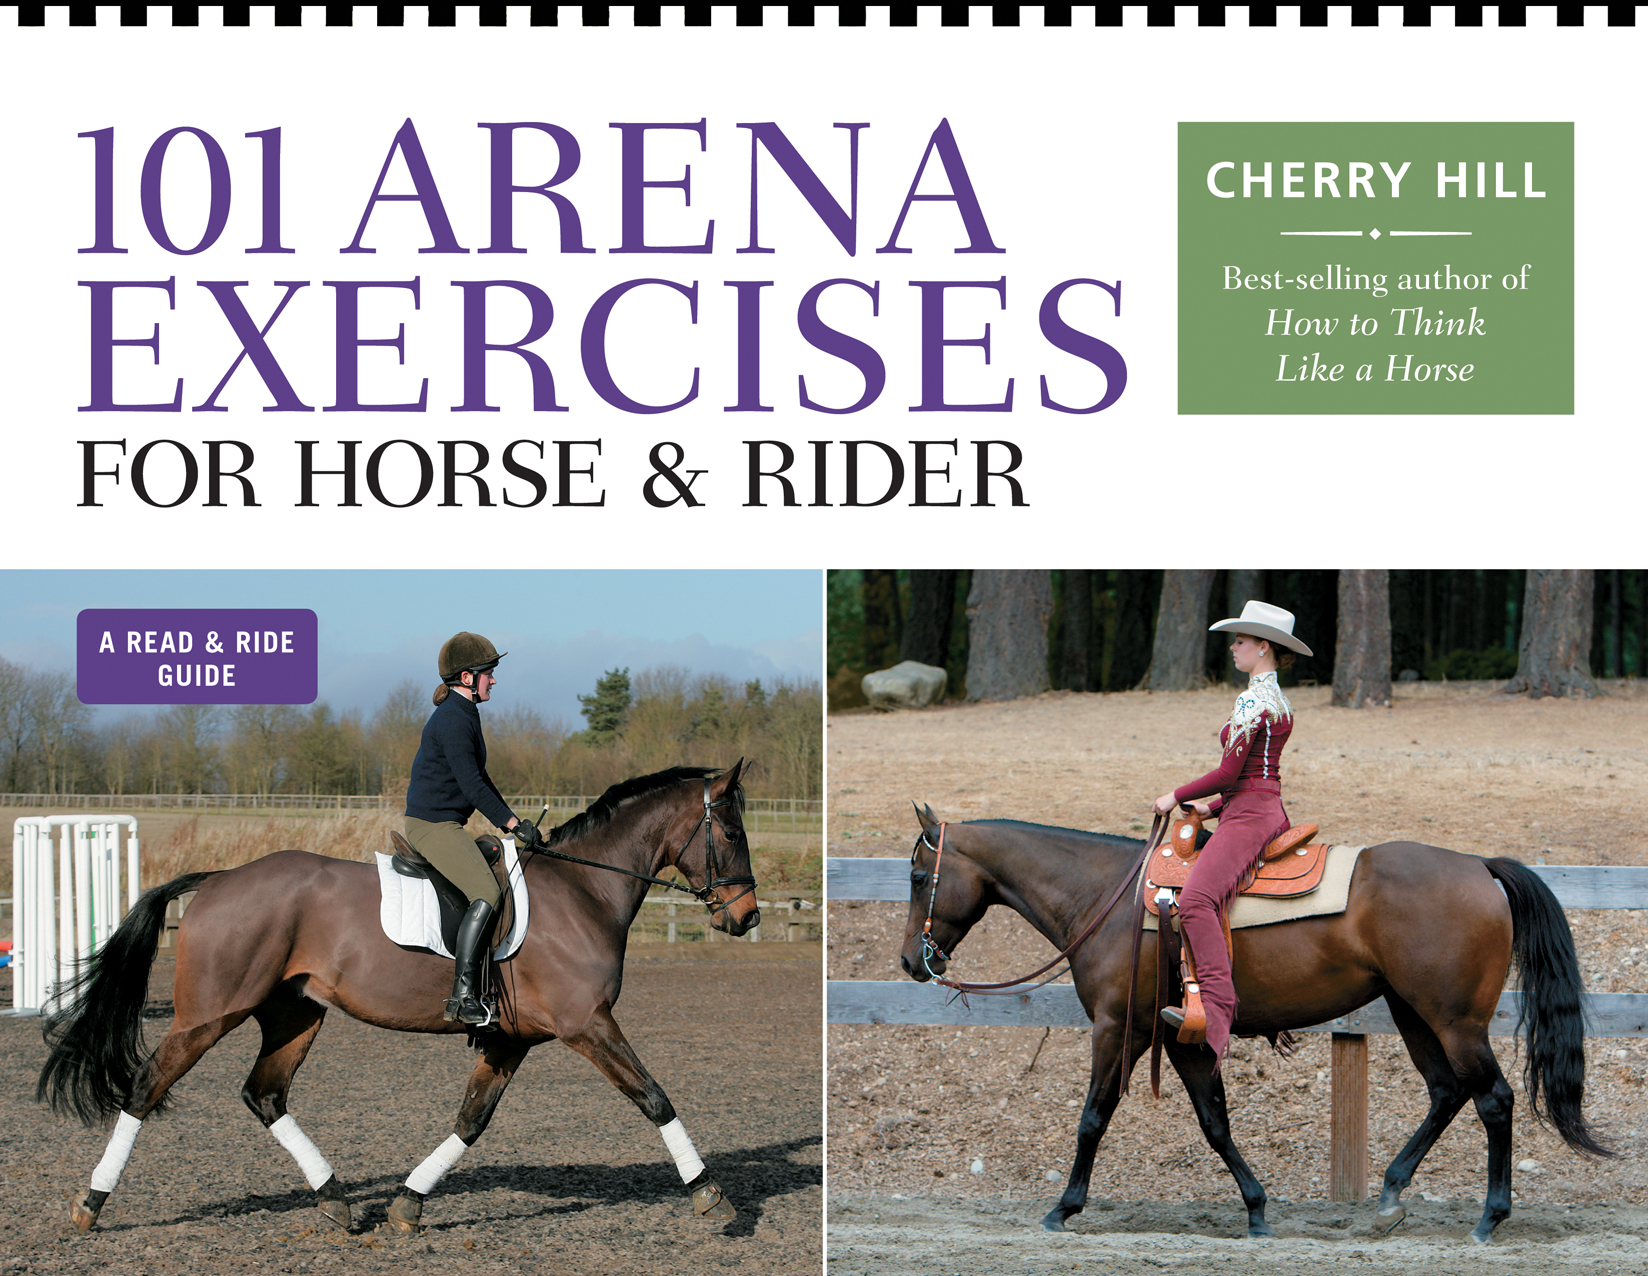 101 Arena Exercises for Horse & Rider  - Cherry Hill